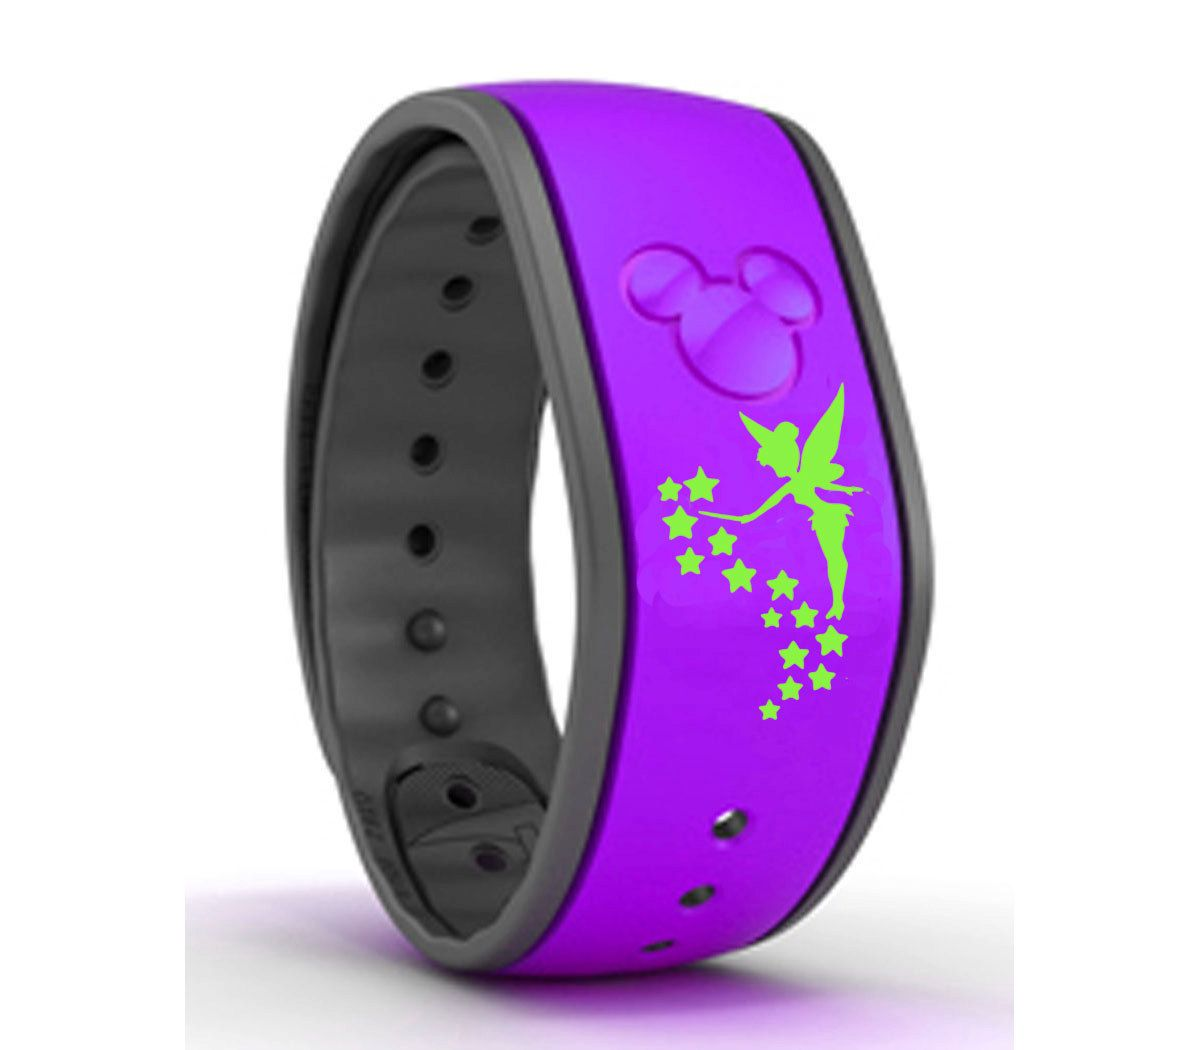 One Magic Band Vinyl Decal Sized To Fit Disney Magic Band If You - Magic band vinyl decals